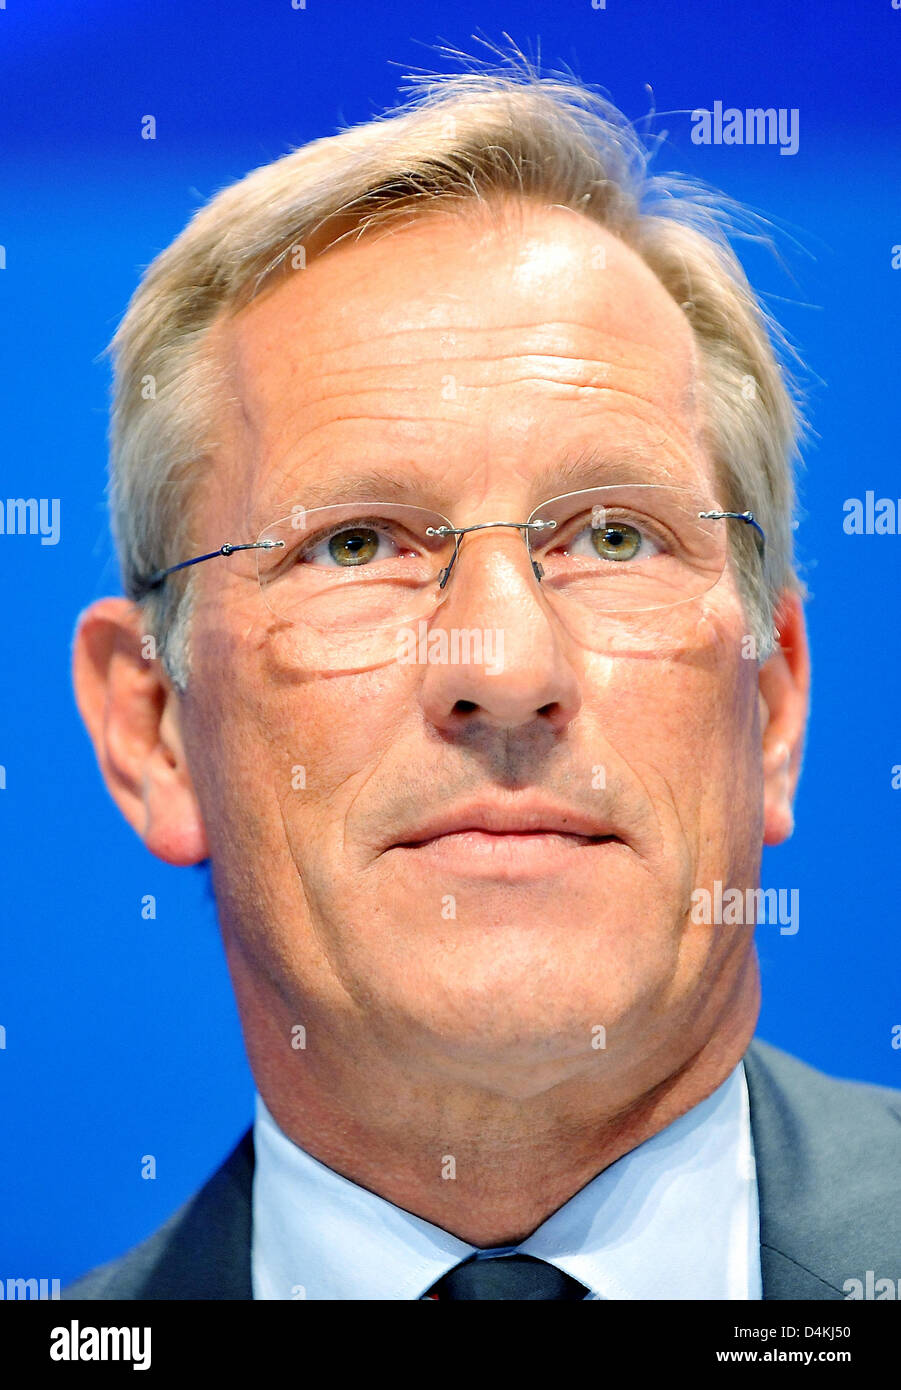 CEO of Allianz, Michael Diekmann, pictured at the insurance company?s general meeting in Munich, Germany, 29 April 2009. Europe?s largest insurance company Allianz still gives no prospect for the ongoing year due to the global financial and economic crisis. Photo: FRANK LEONHARDT Stock Photo